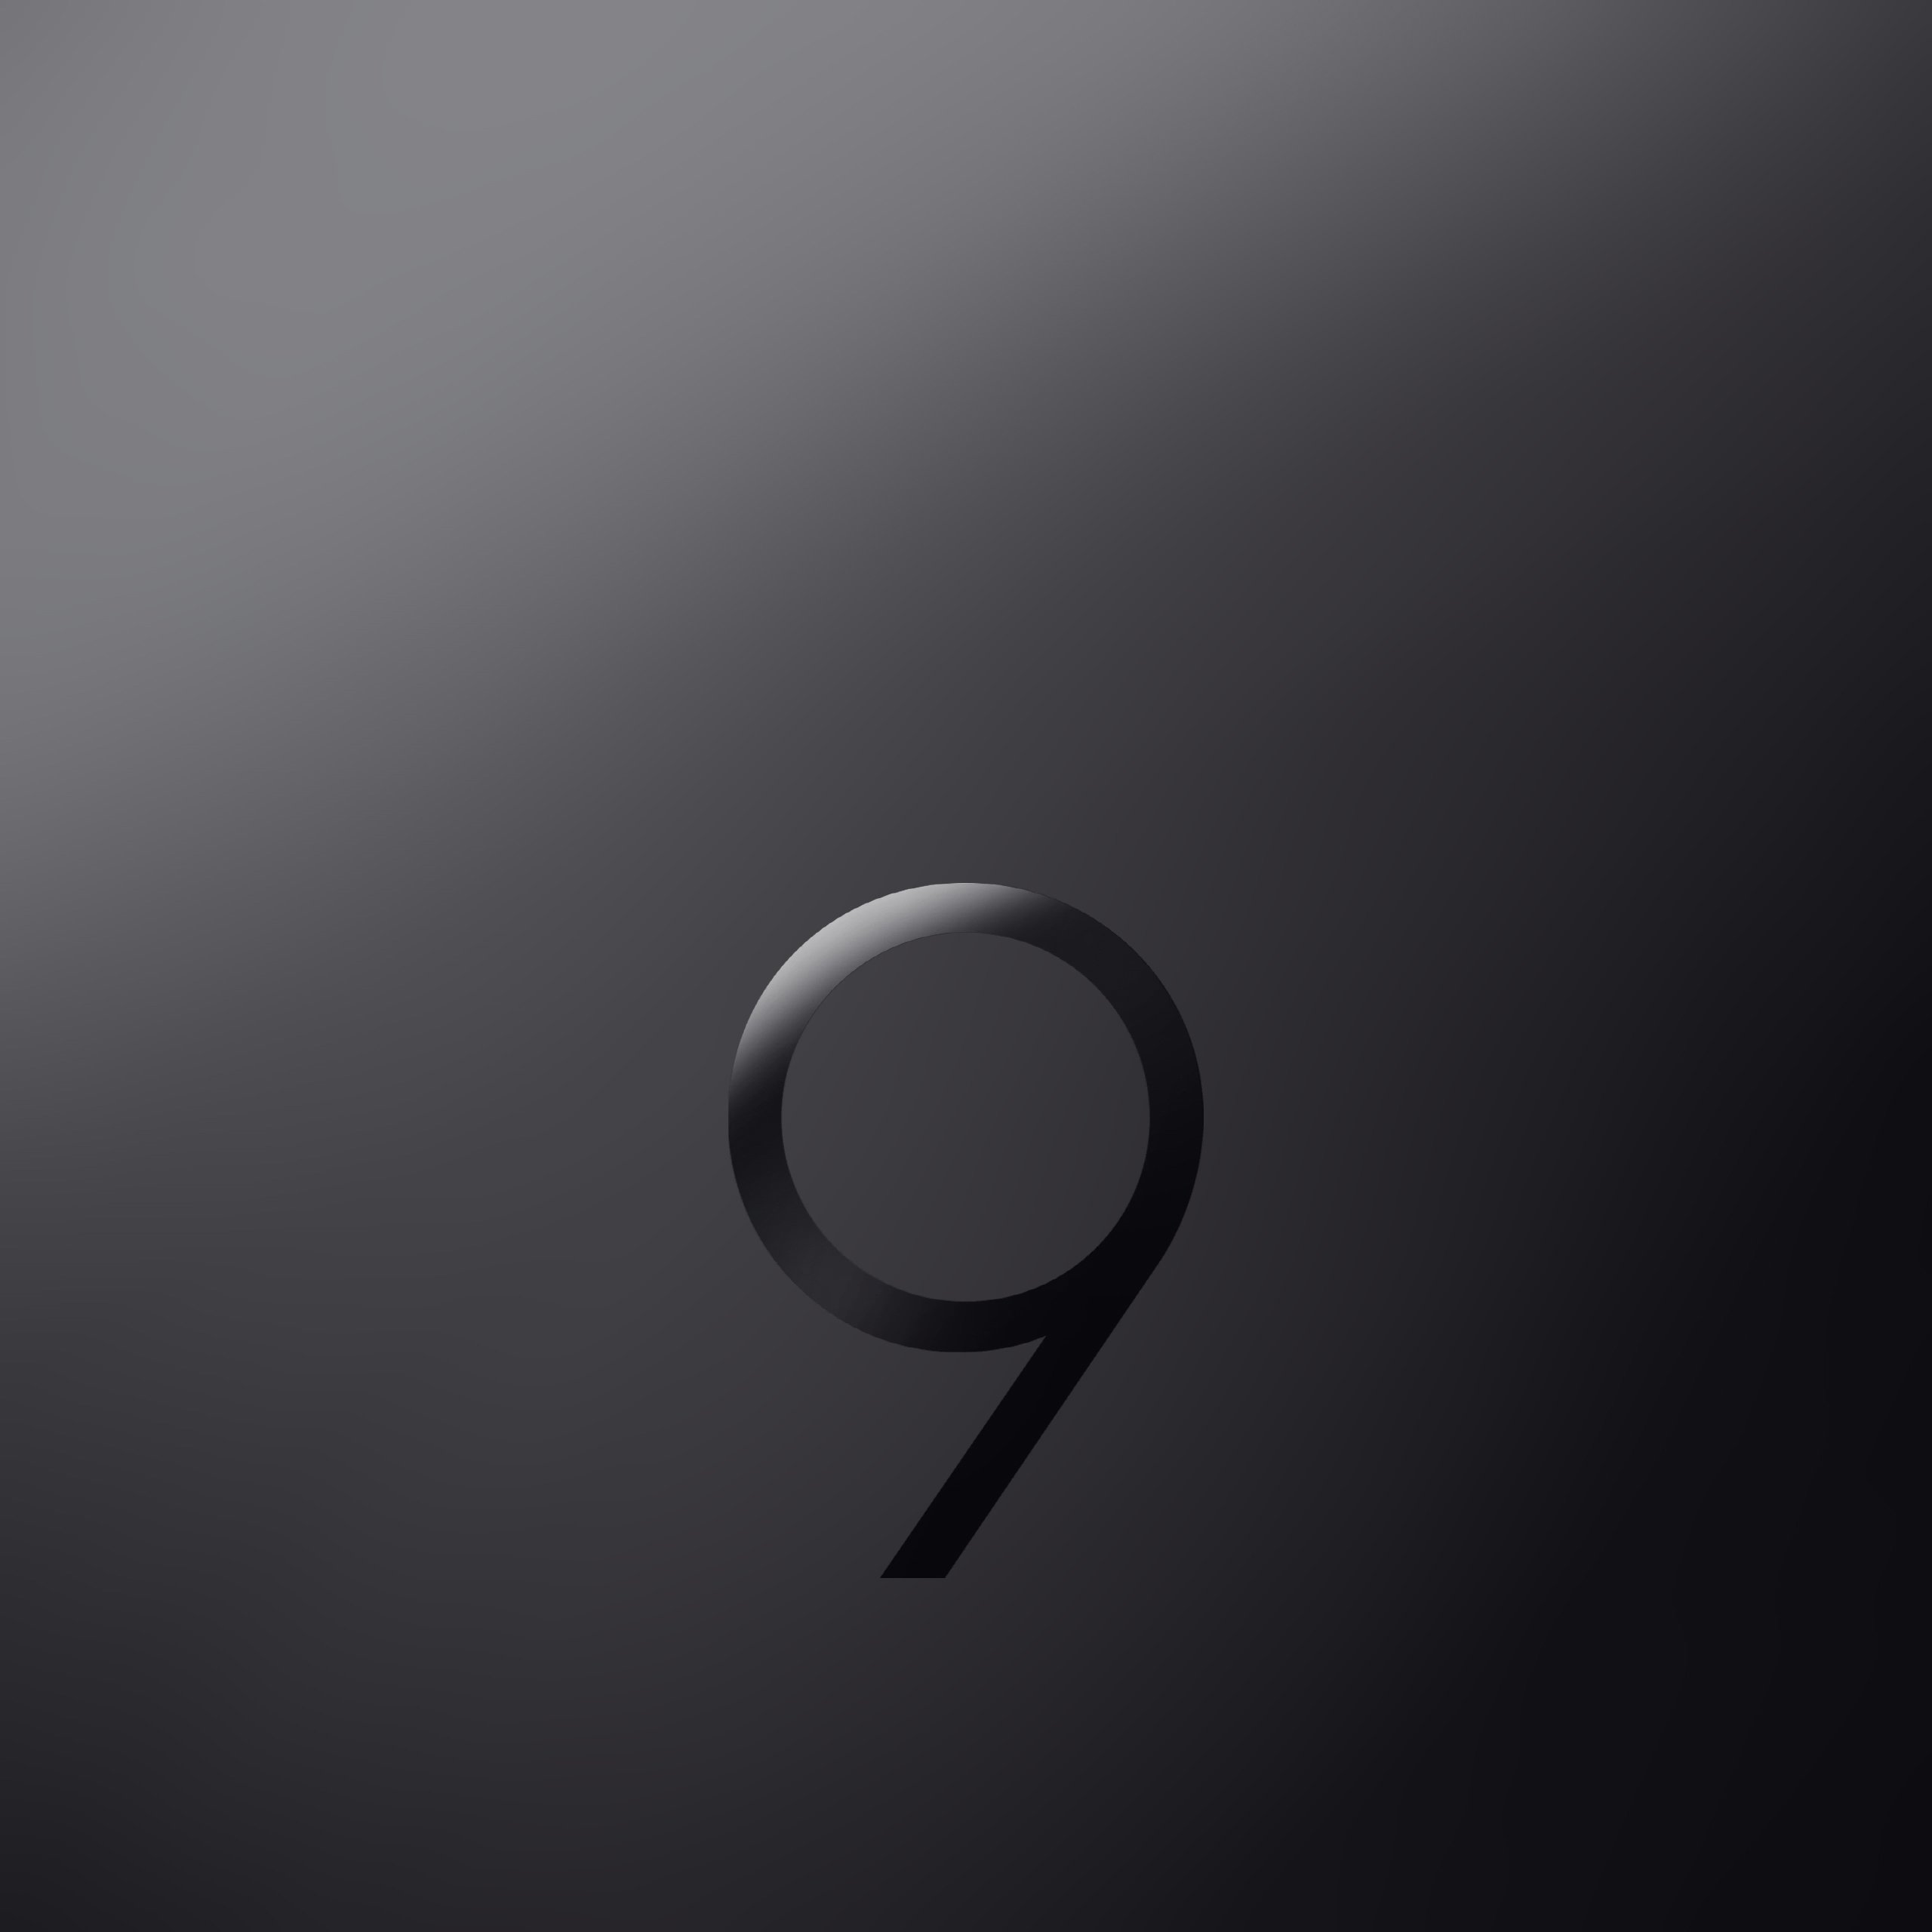 Samsung-Galaxy-S9-Official-Stock-QHD-Wallpapers-Mohamedovic.com (8)